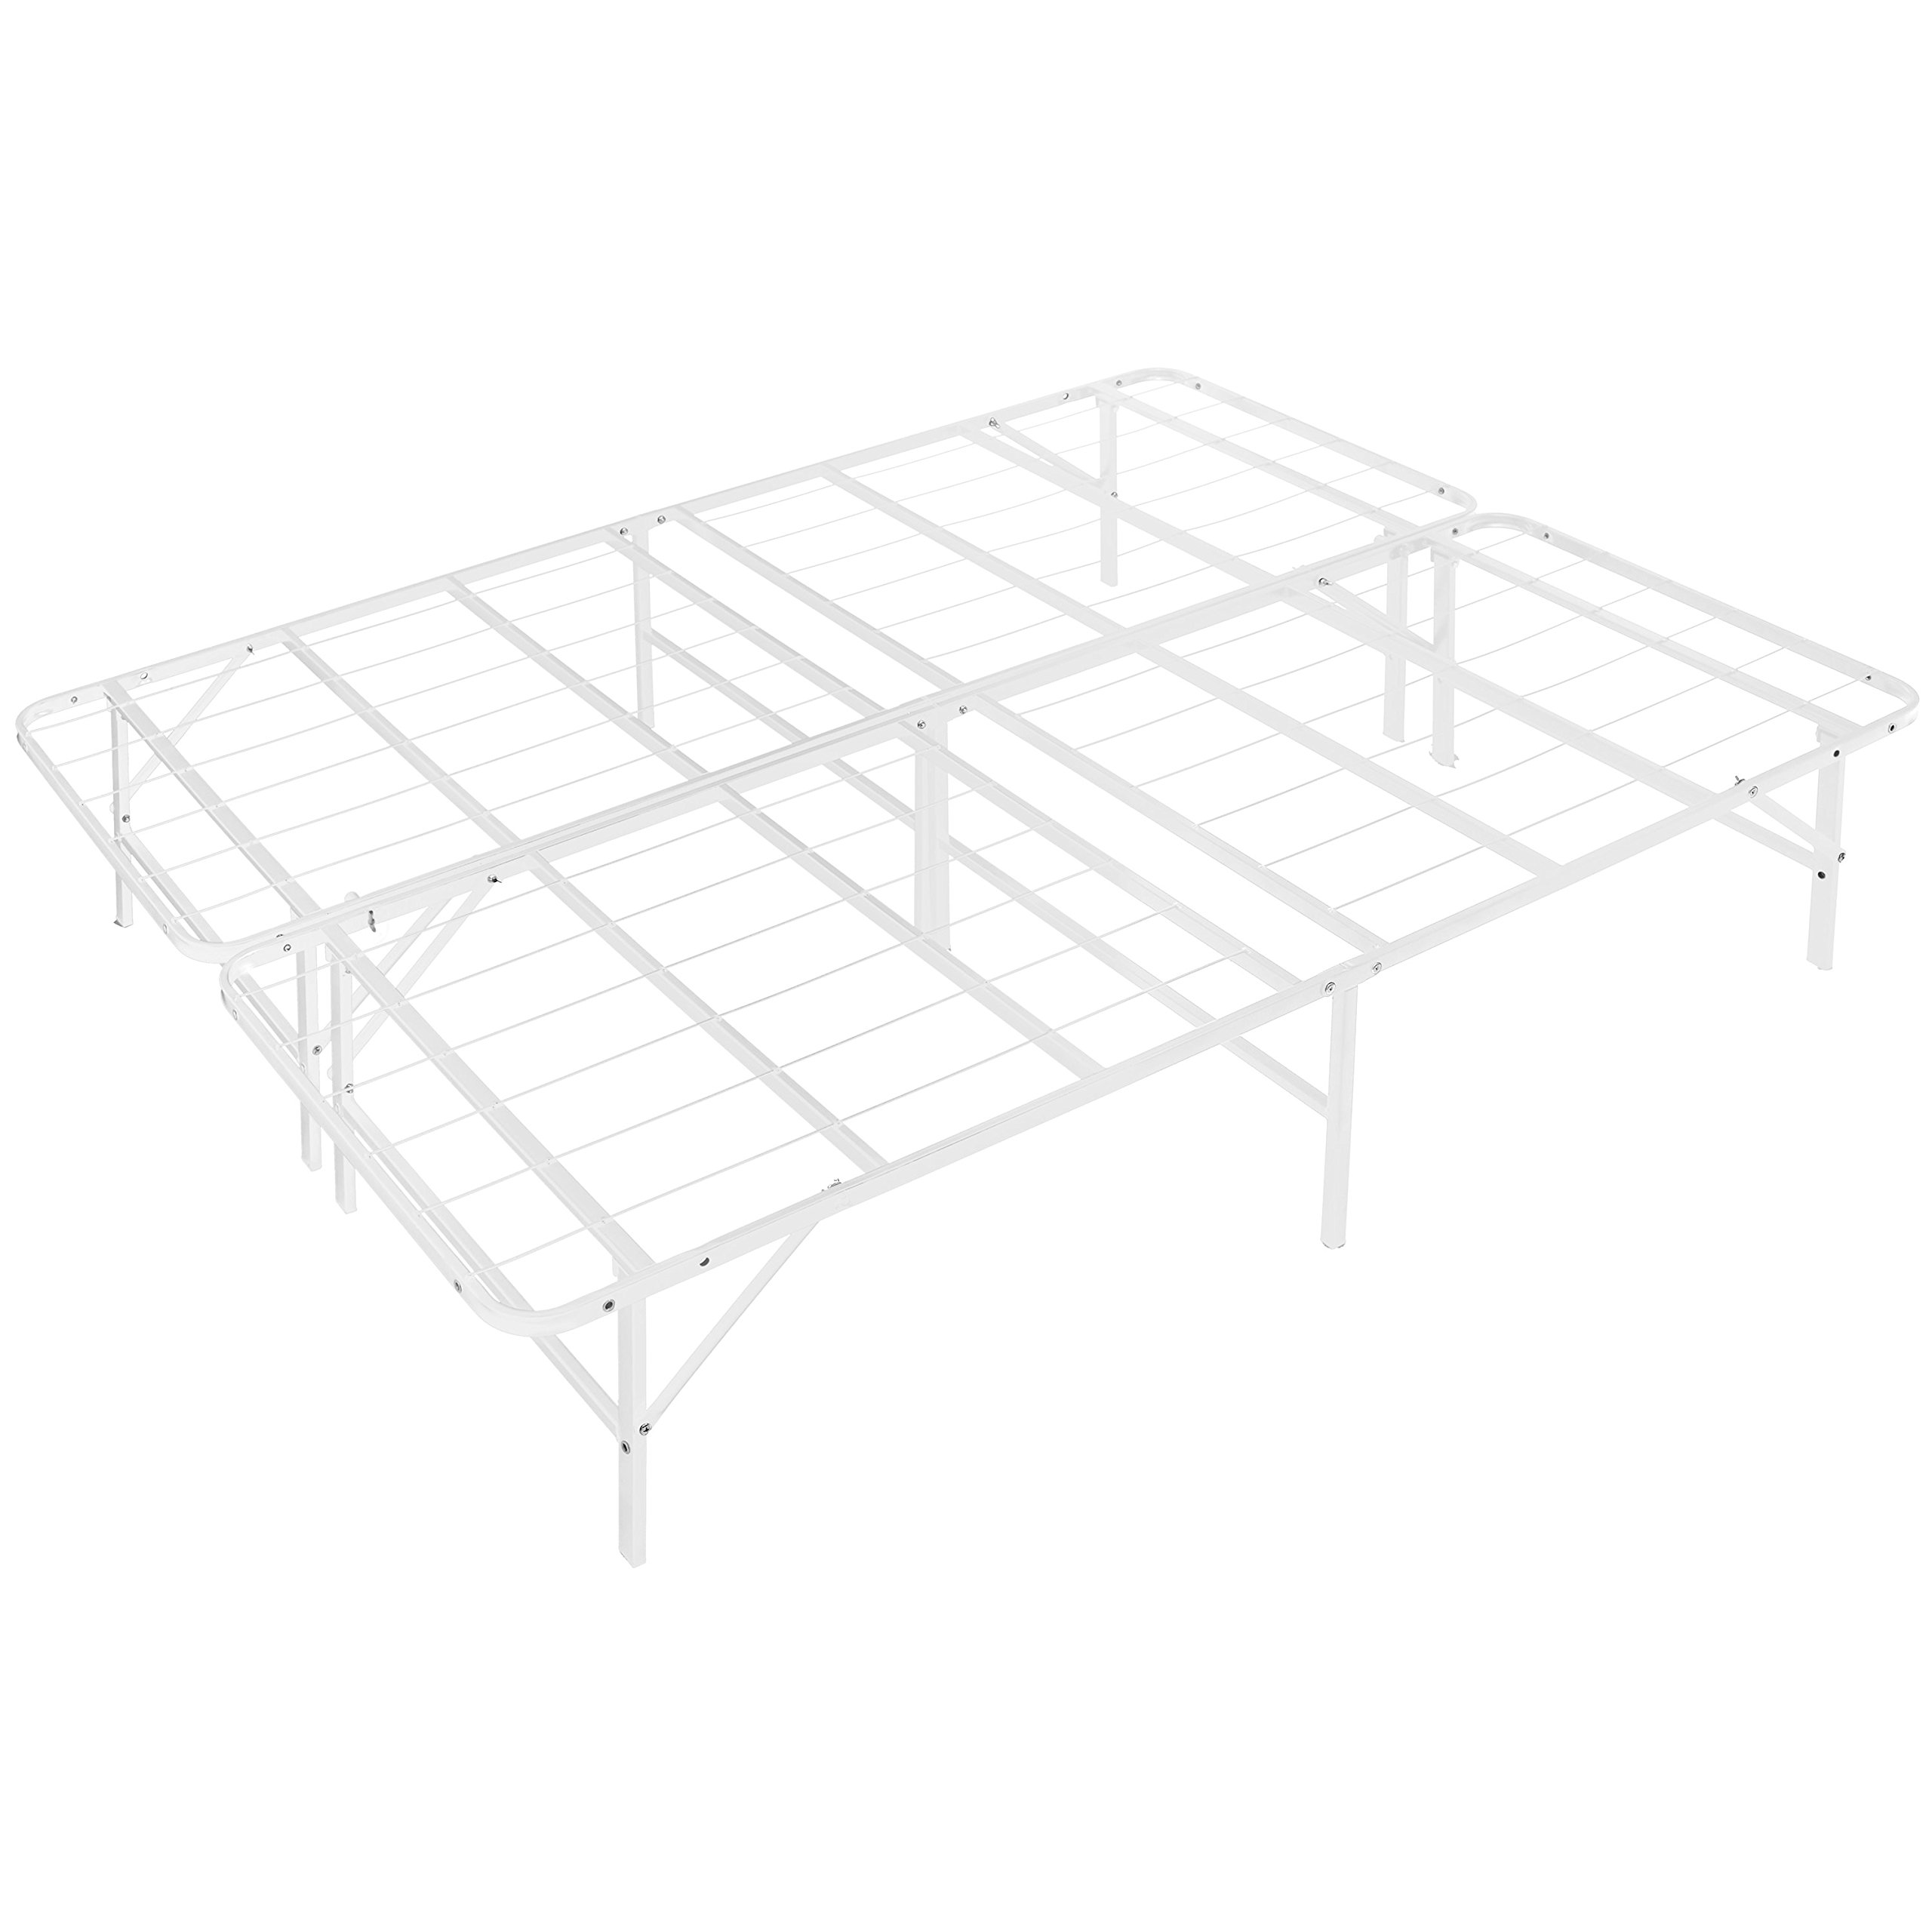 Naomi Home idealBase 14'' Platform Metal Bed Frame - Mattress Foundation - Box Spring Replacement Queen/White